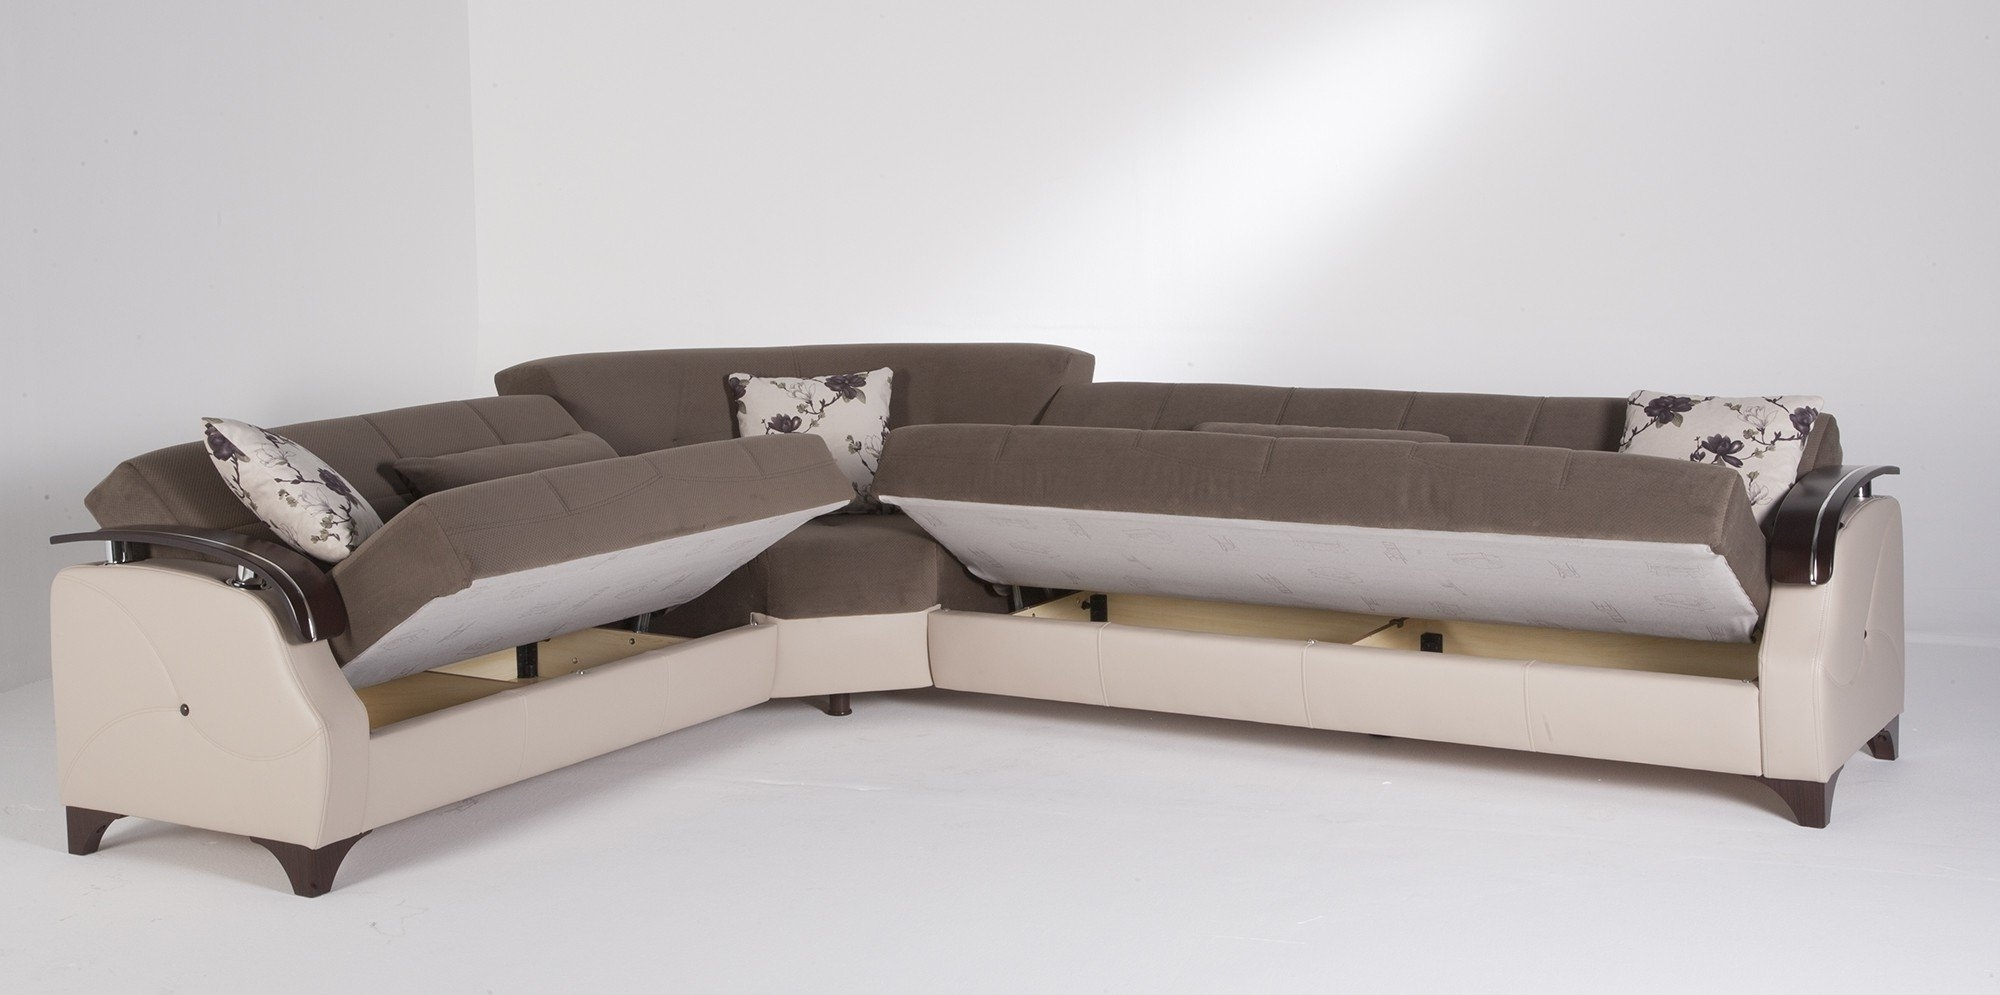 Sofas Cheap Sofa Sleepers Sleeper Sectional Sofa Comfortable With With Regard To Widely Used Sleeper Sectional Sofas (View 10 of 20)